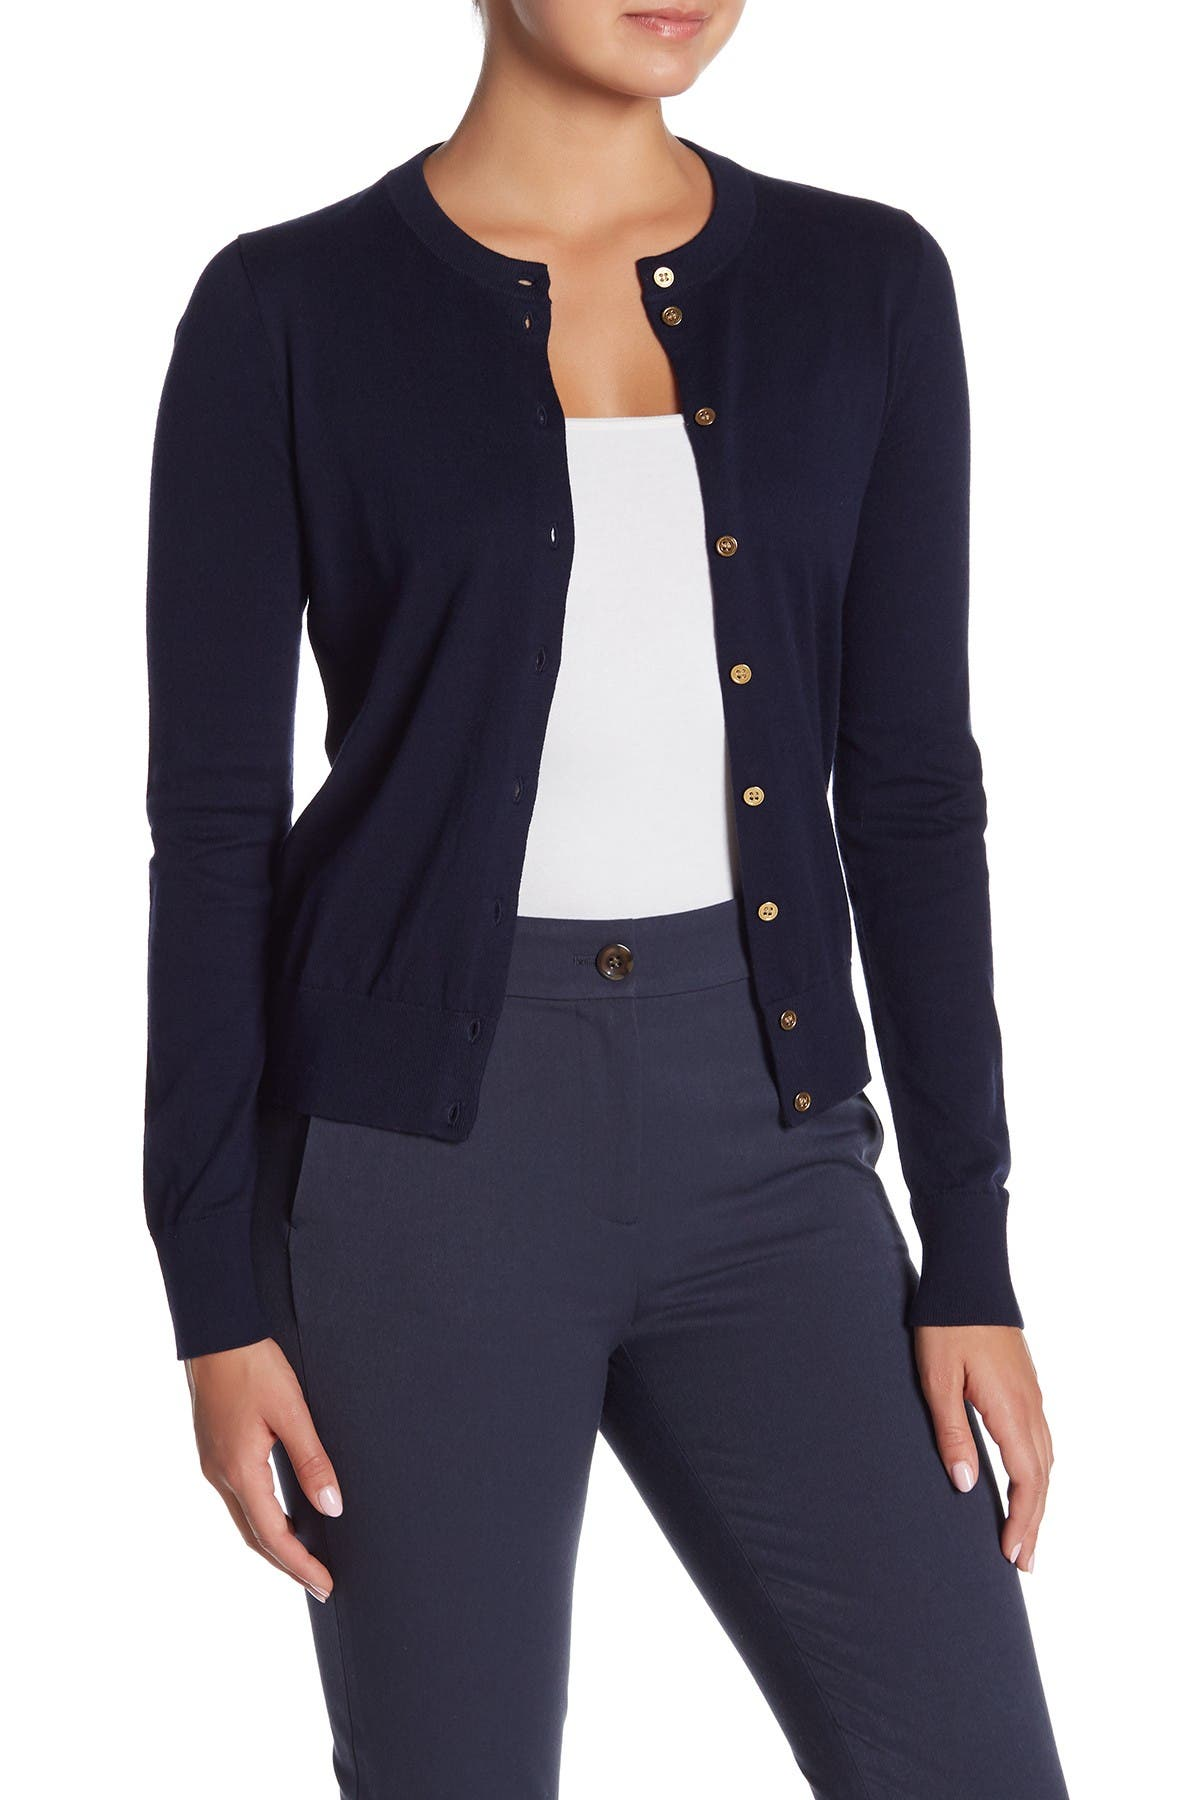 Image of J. Crew Front Button Knit Cardigan